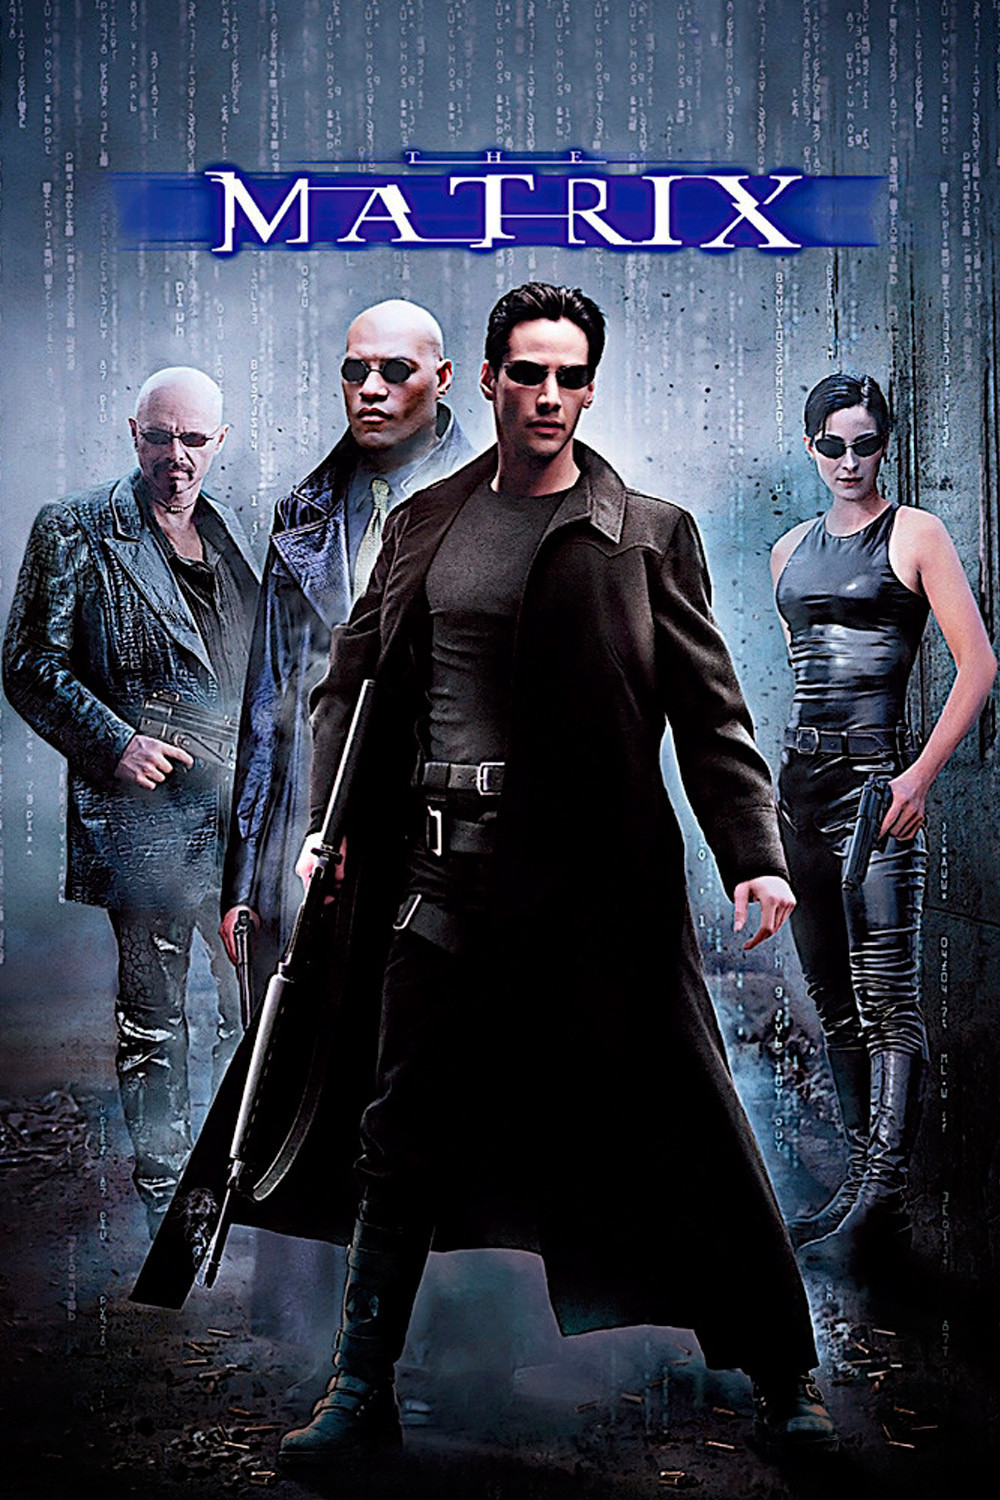 The matrix plot summary